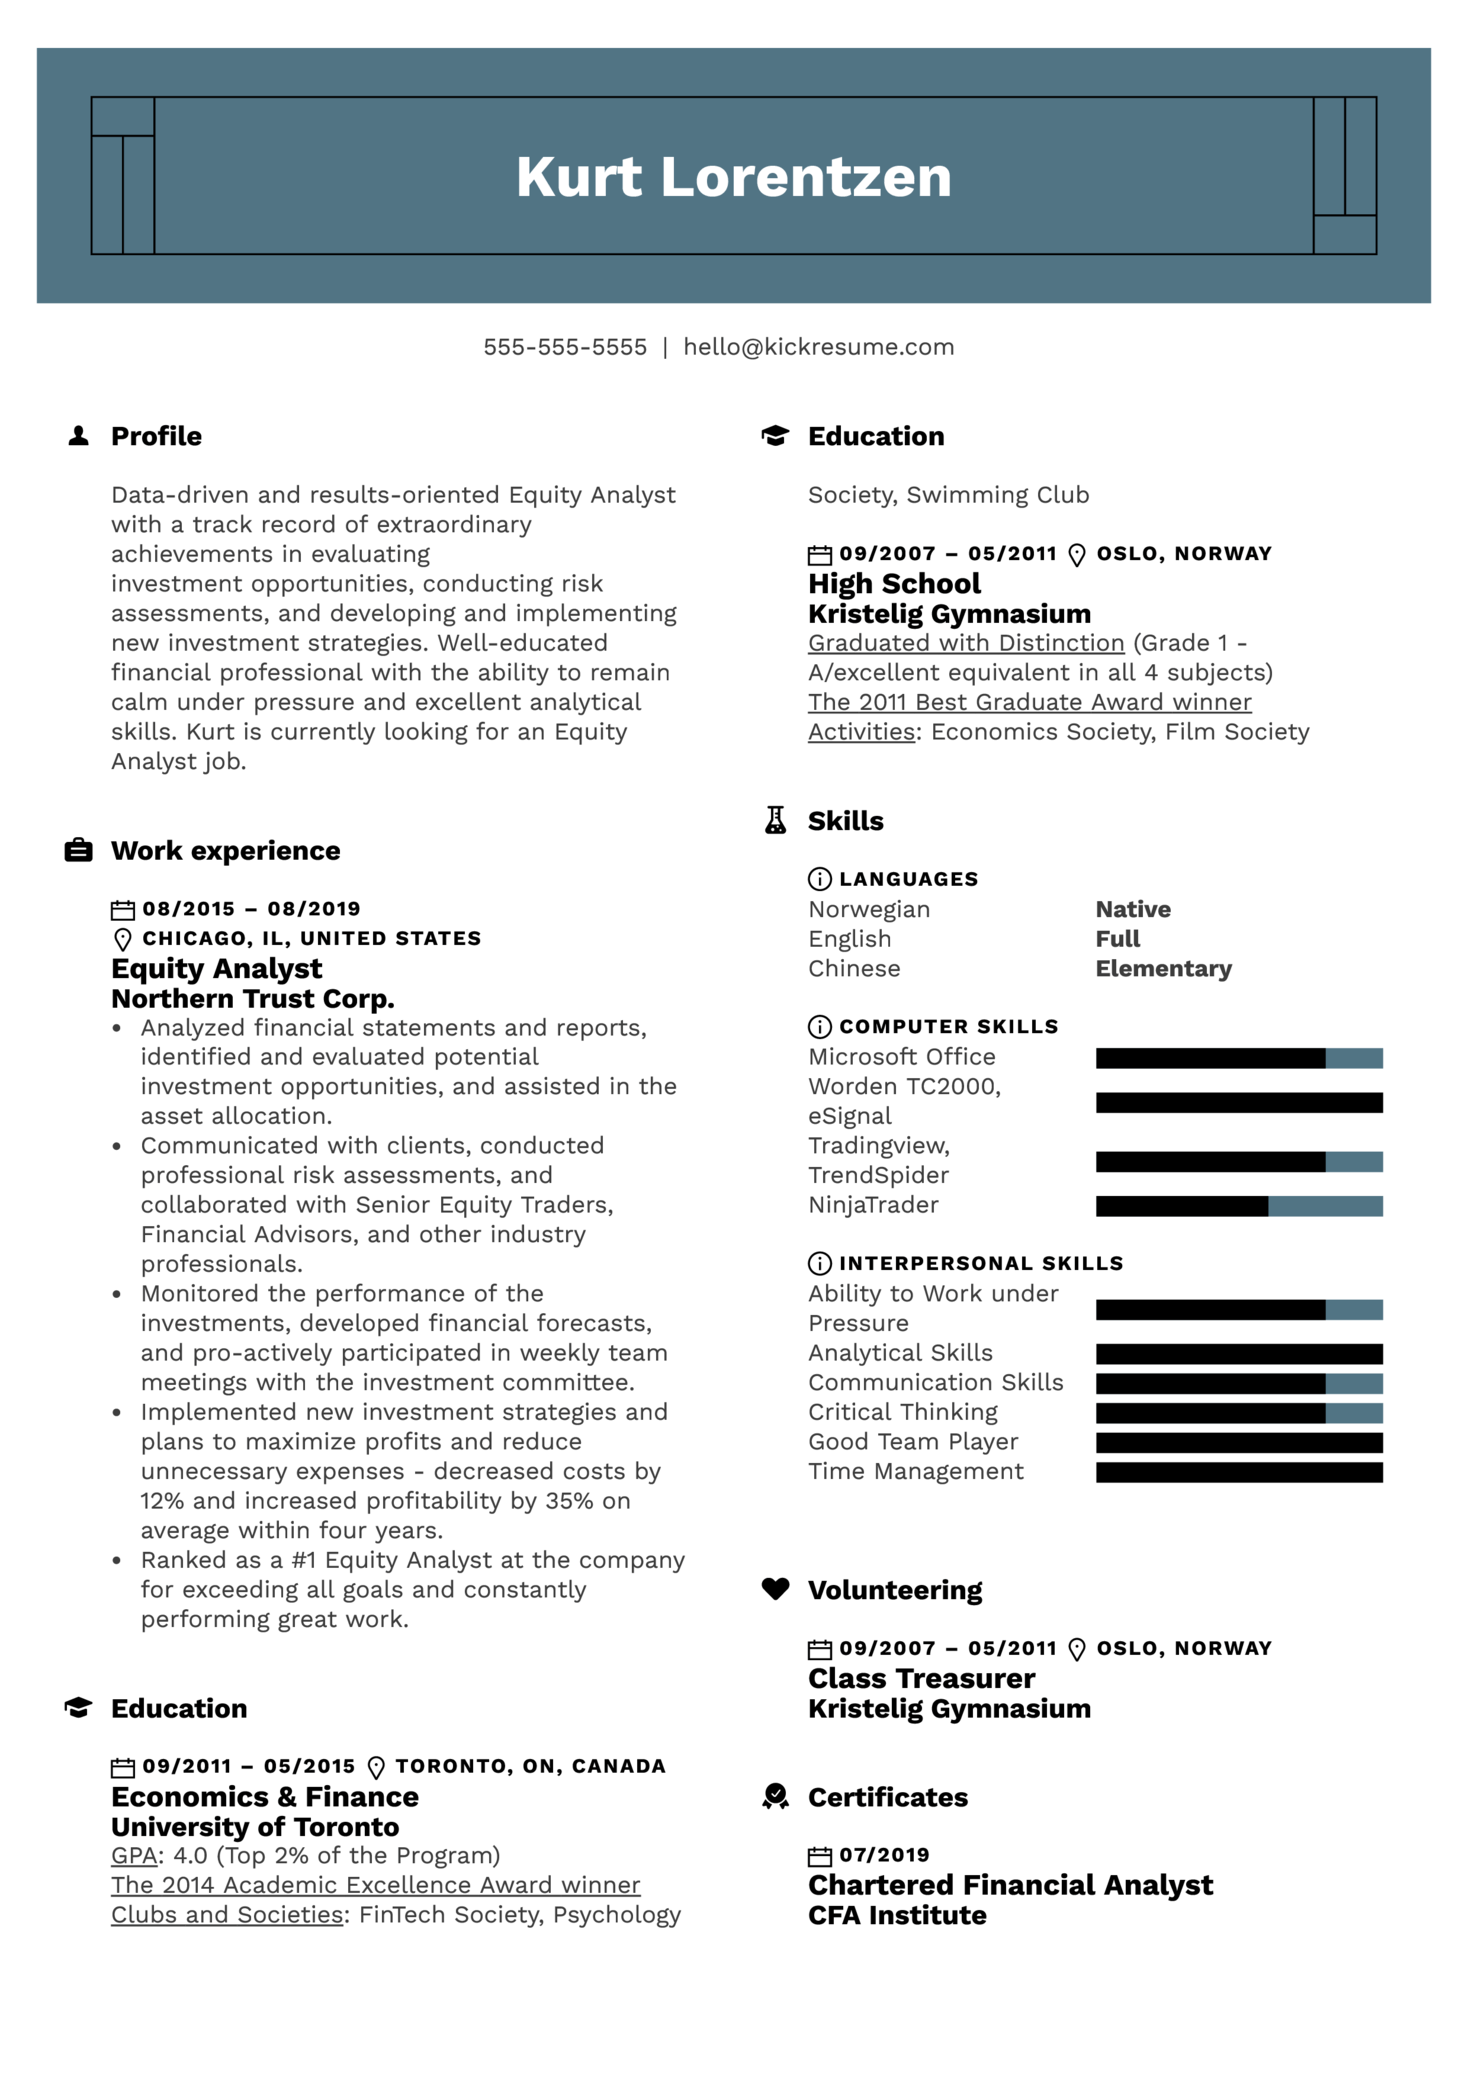 Equity Analyst Resume Example (parte 1)